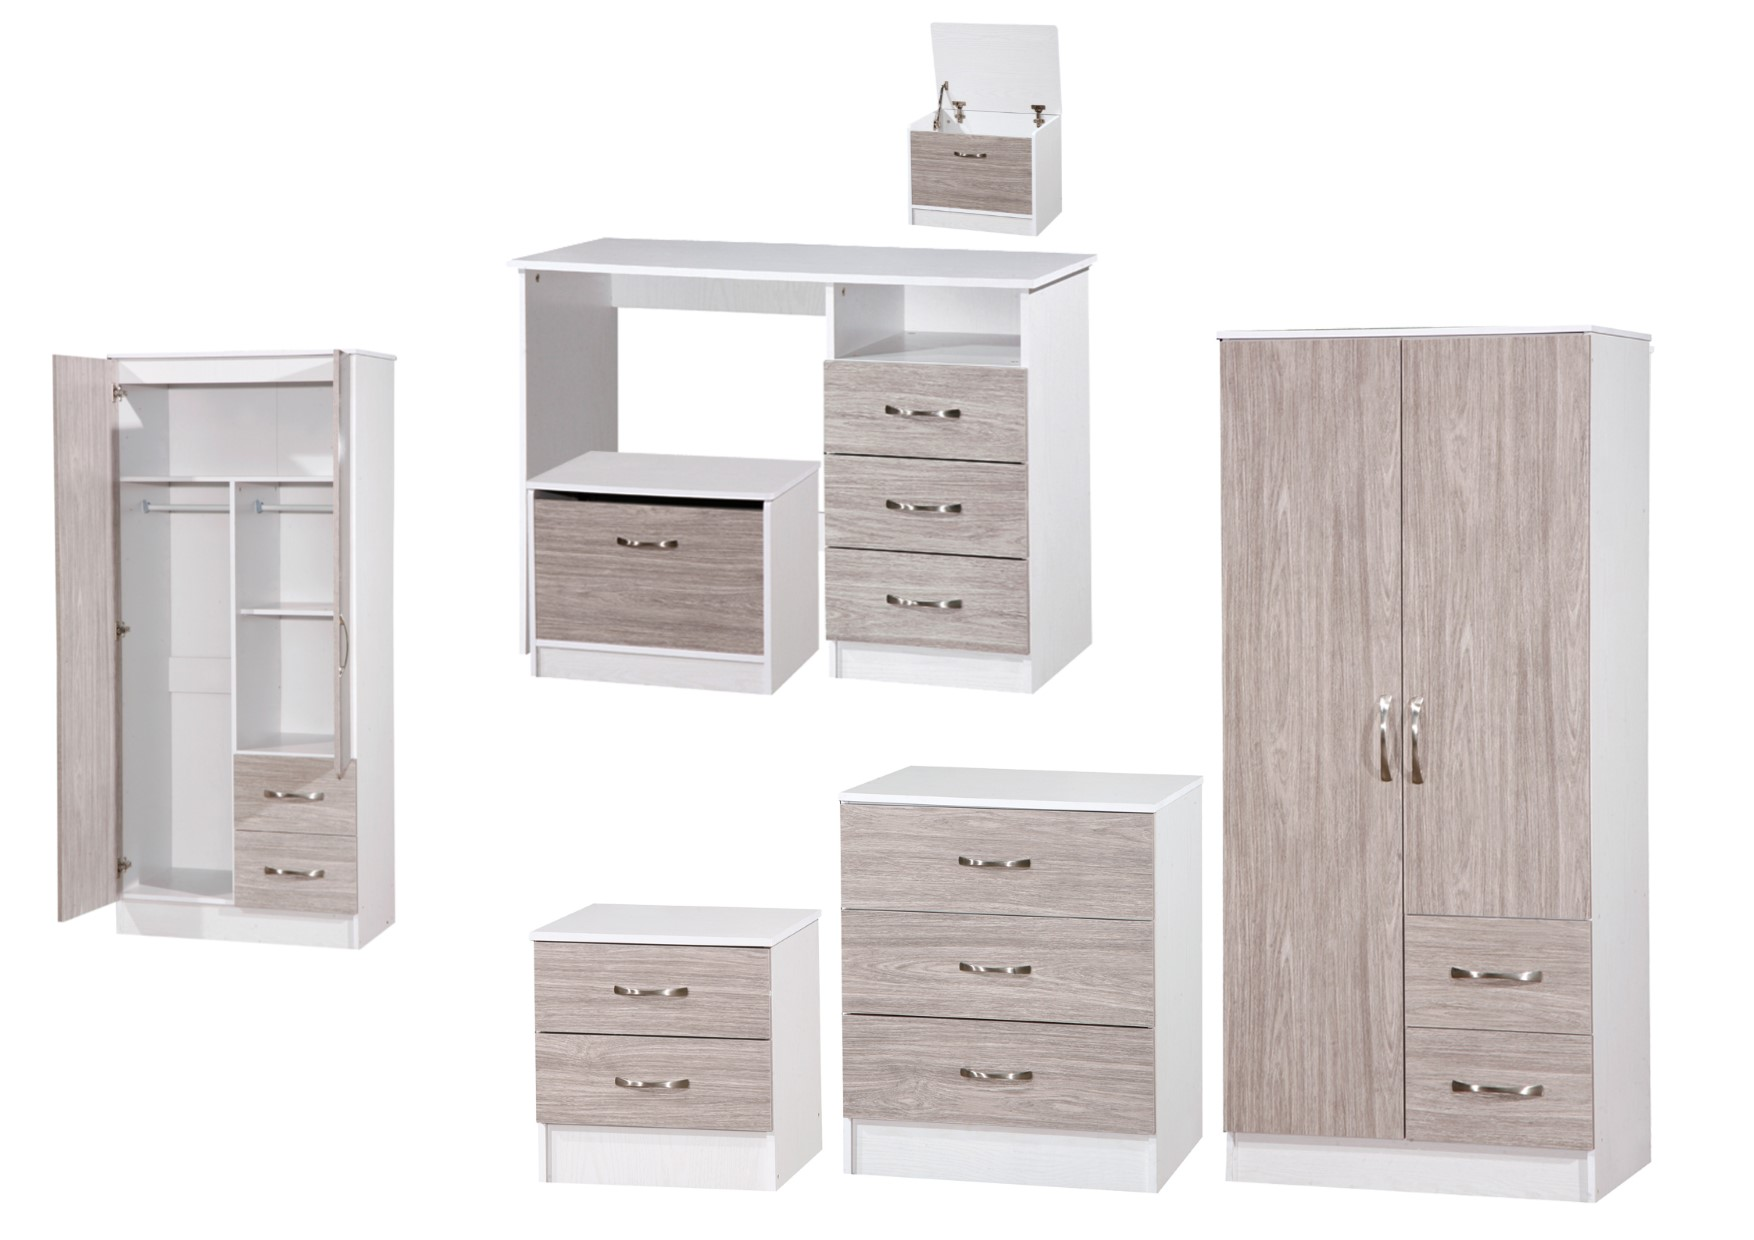 Marina grey white high gloss bedroom furniture sets for High gloss bedroom furniture